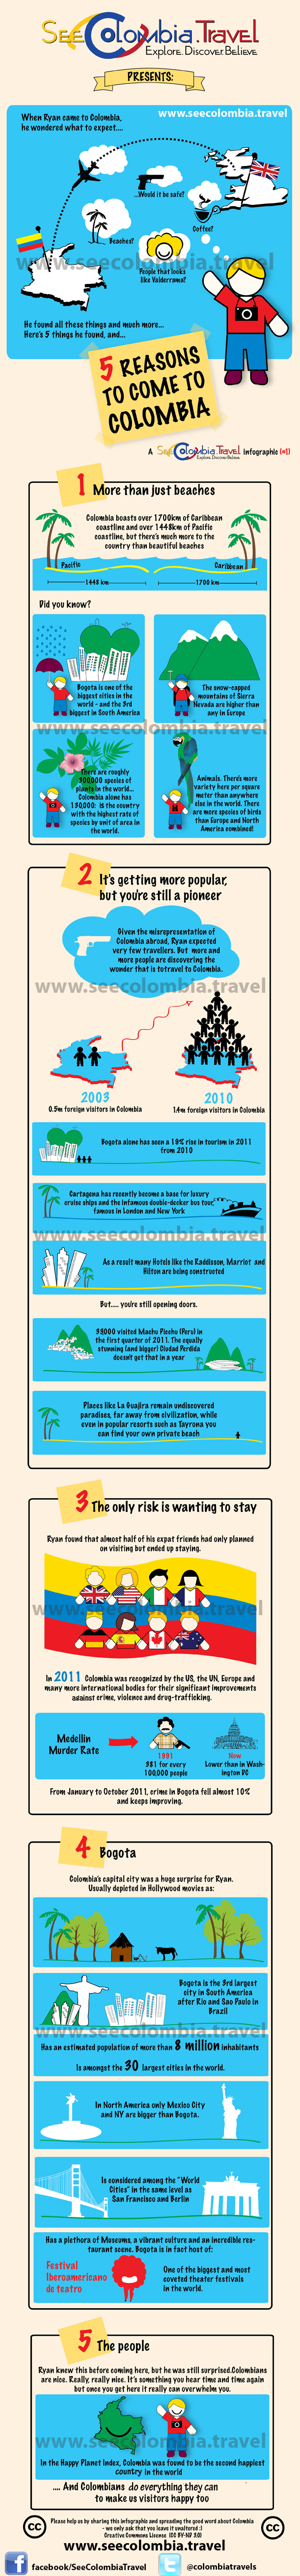 Colombia Travel Infographic 1